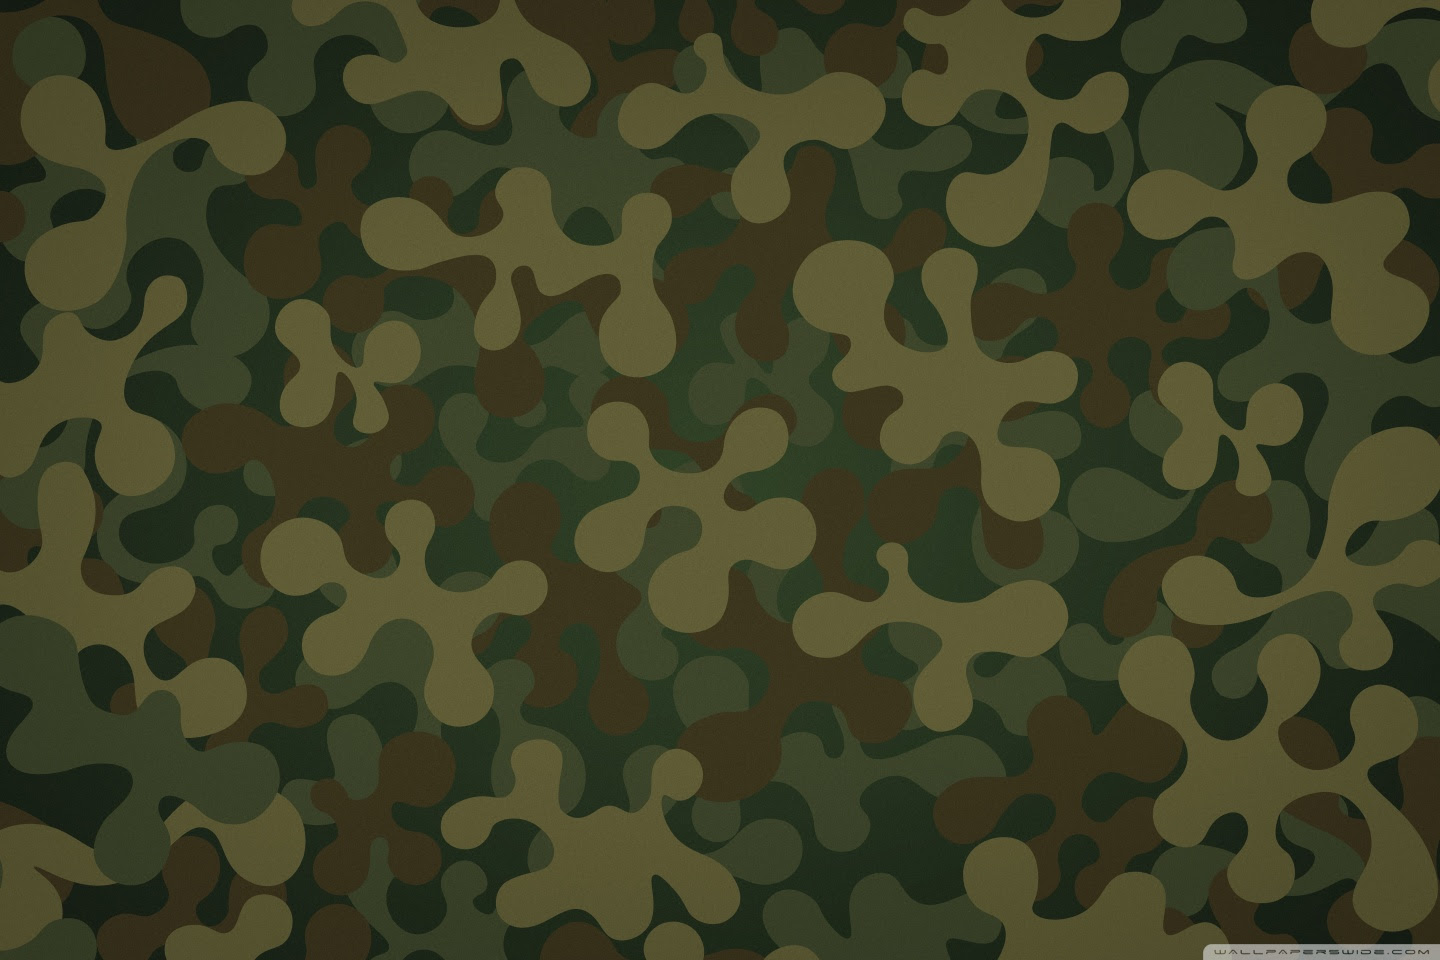 Army Digital Camouflage Hd Wallpaper All In One Wallpapers